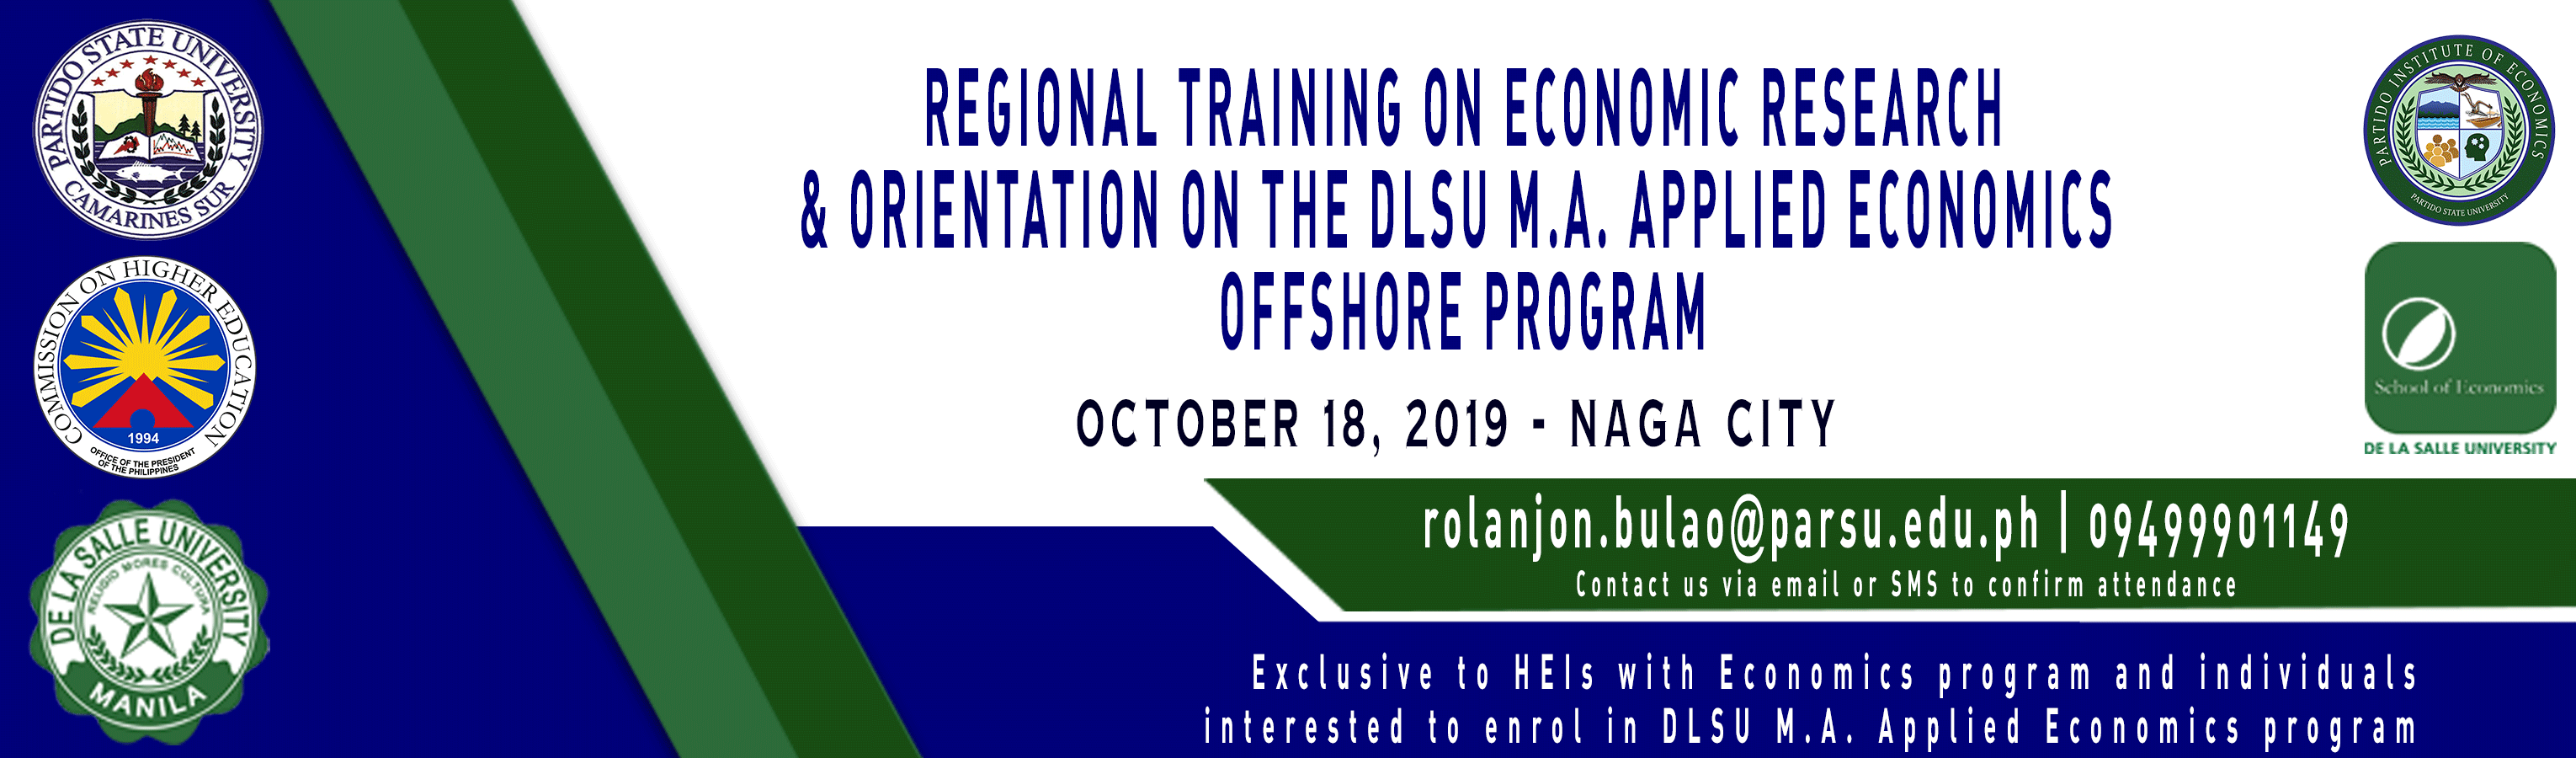 Regional Training on Economic Research & Orientation on the DSLU M.A. Appled Economics Offshore Program